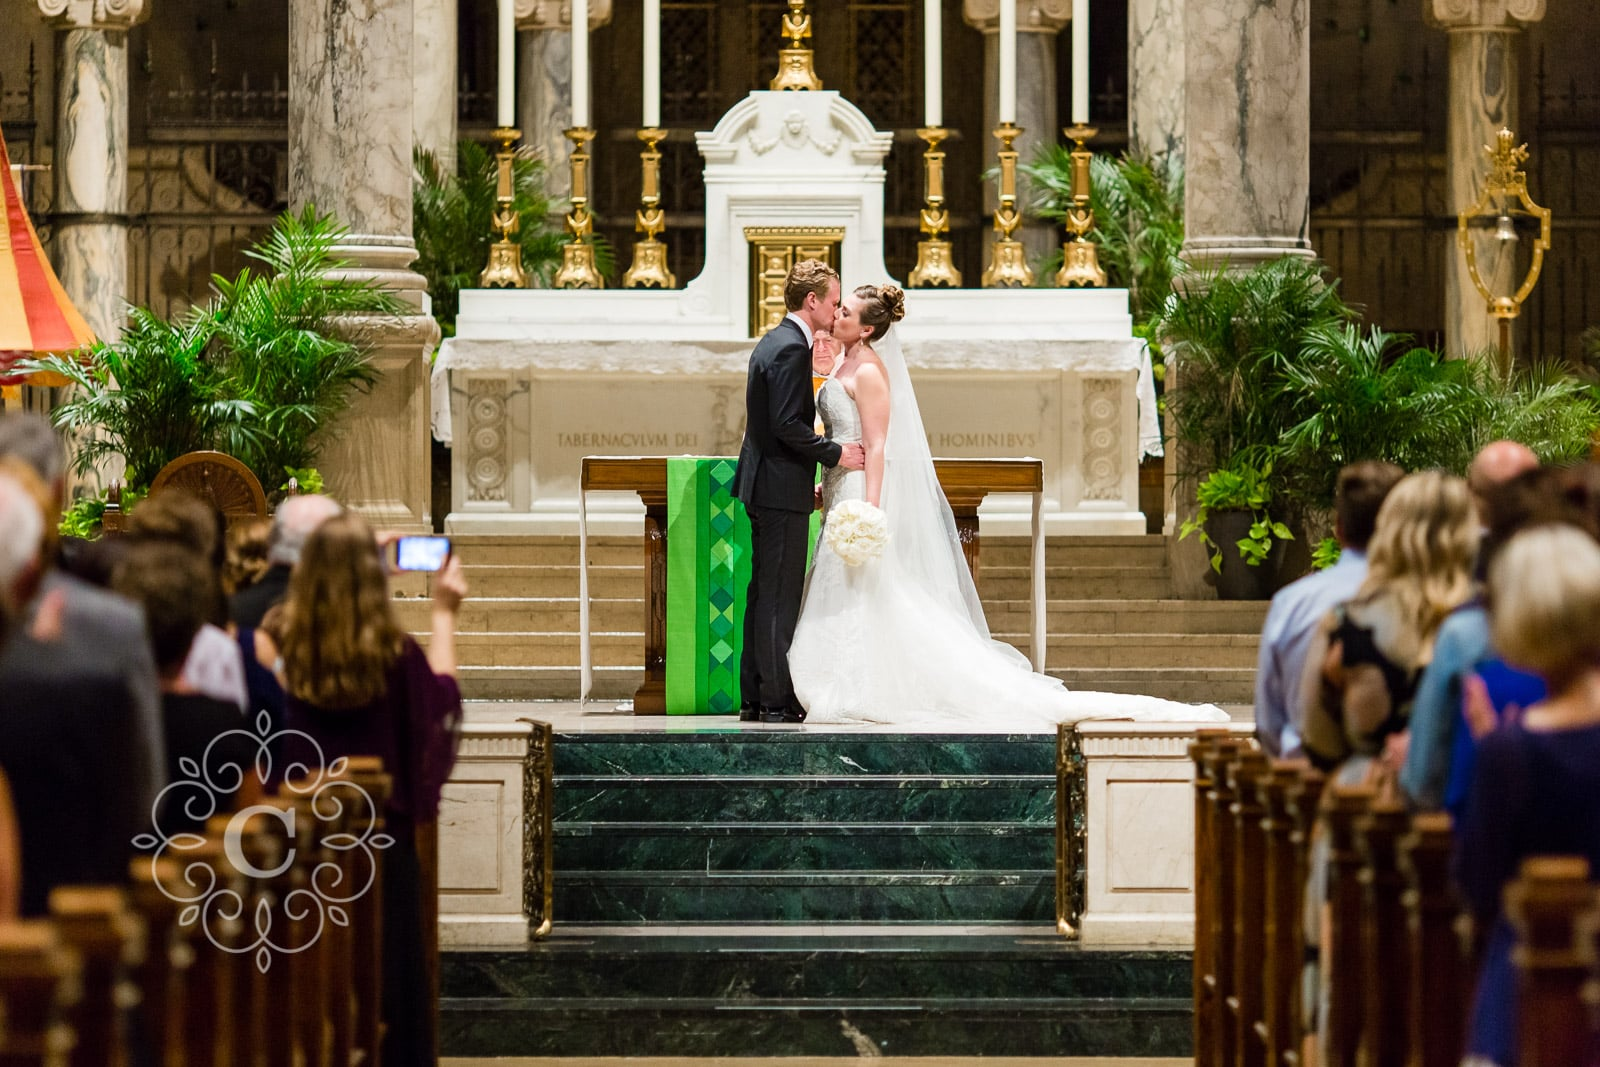 Minneapolis Basilica Wedding Photo